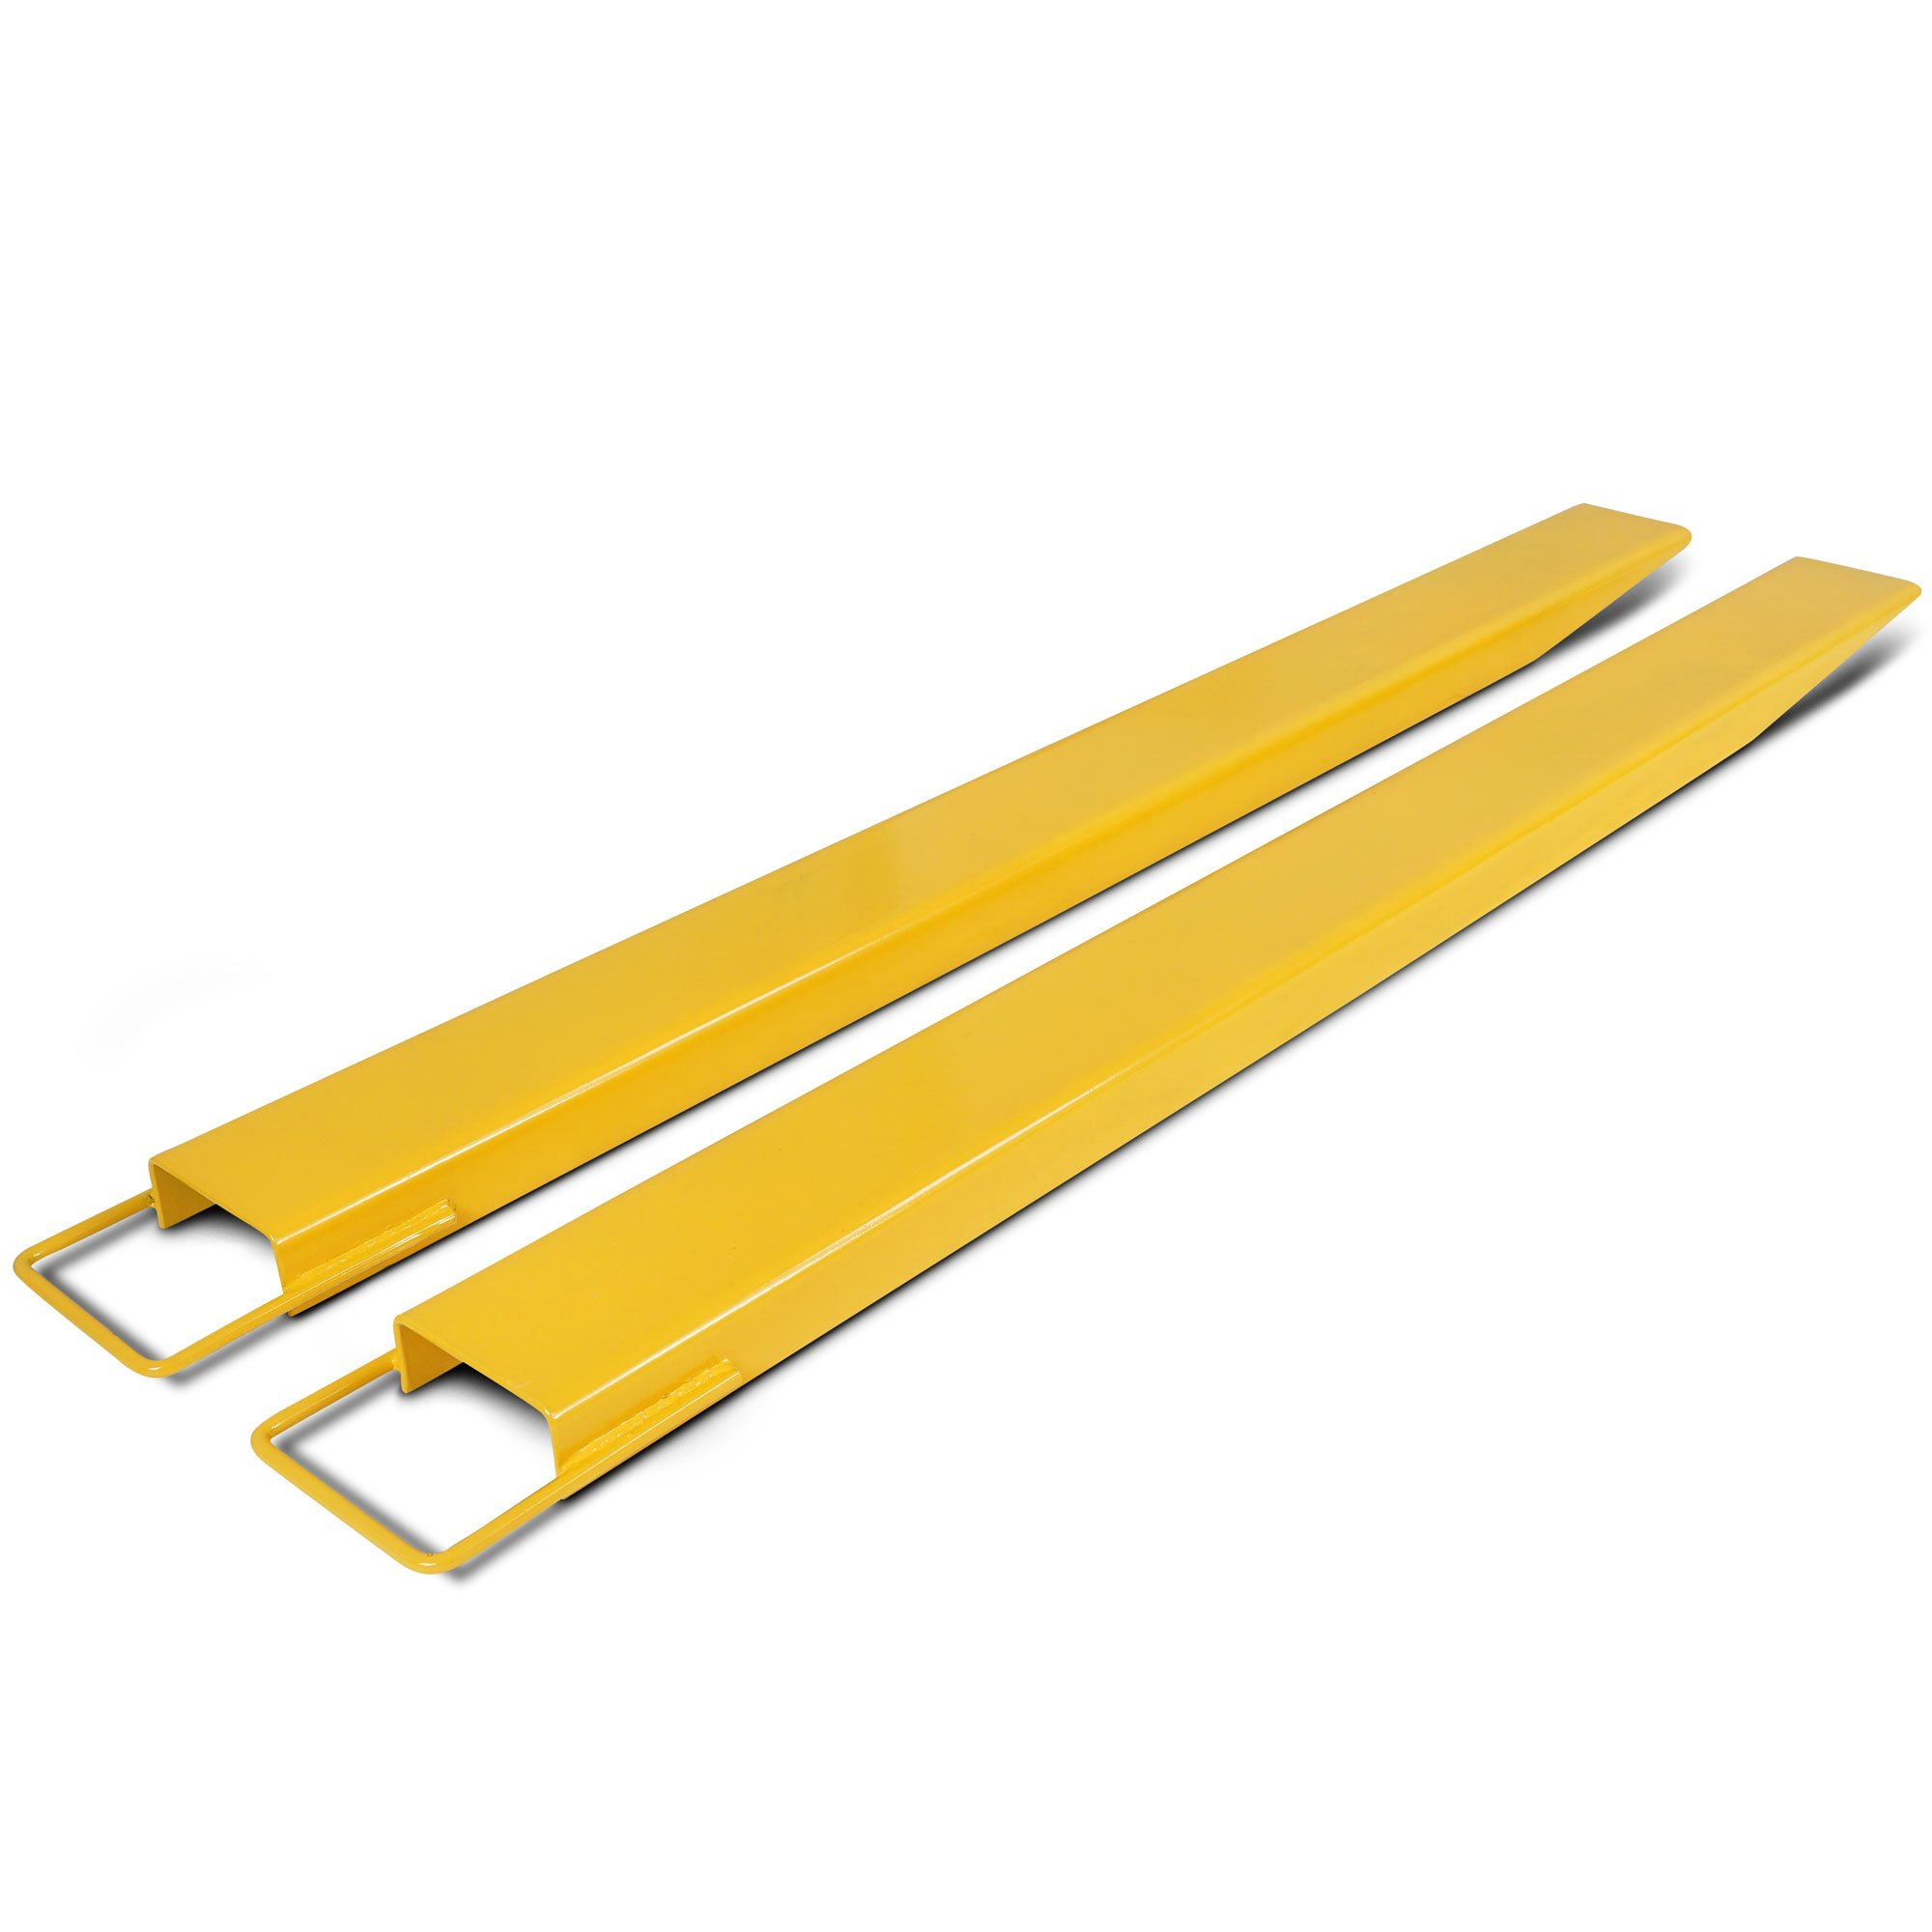 84'' Titan Pallet Fork Extensions for forklifts lift truck slide on steel FX84